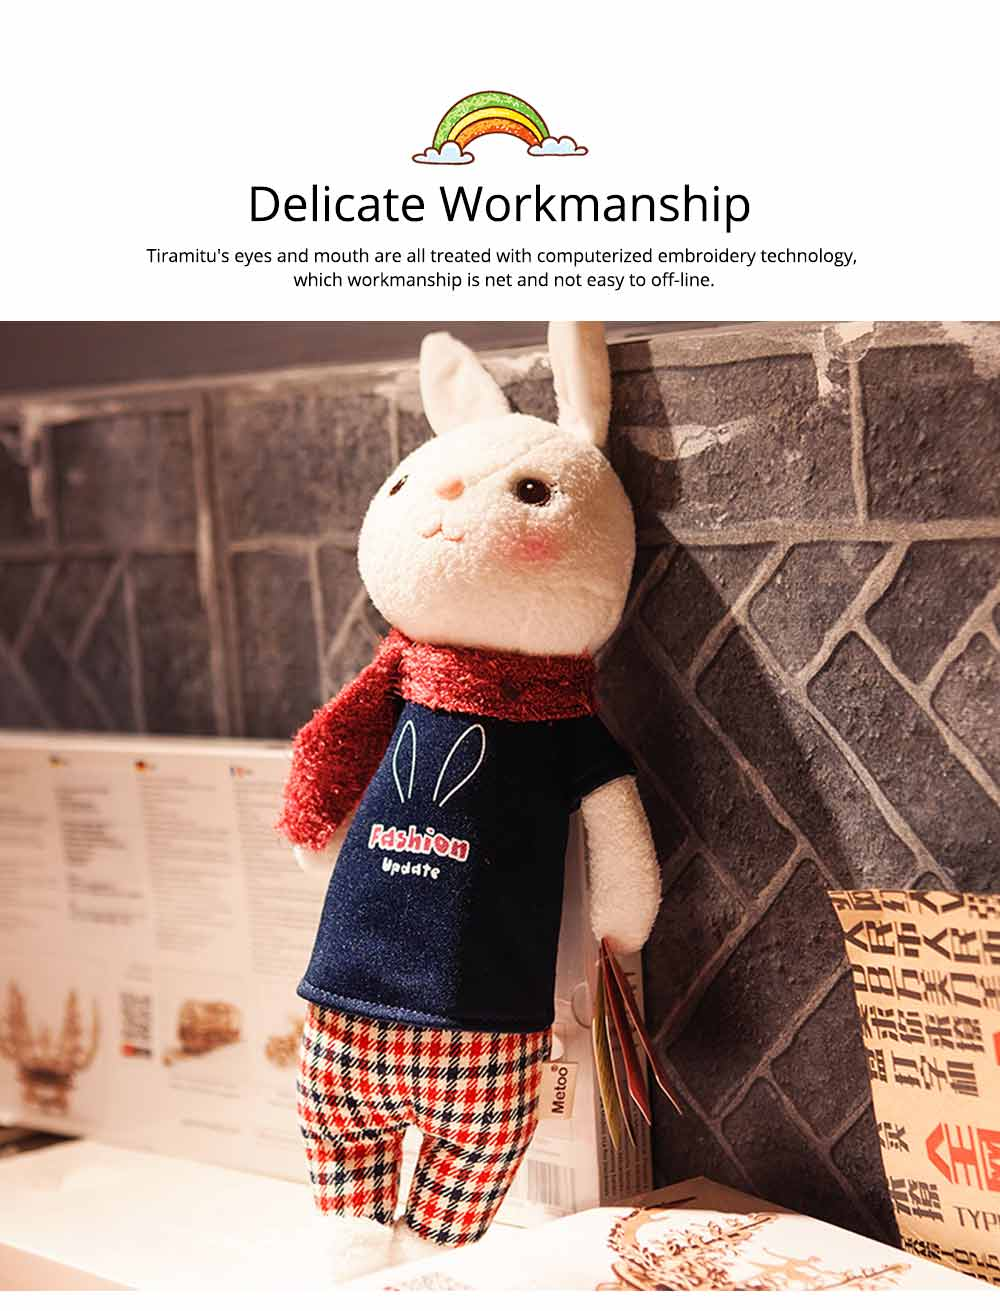 Cute Cartoon Tiramitu Rabbit Plush Stuffed Toy, Ultrasoft Smooth Children's Day Present Doll 3